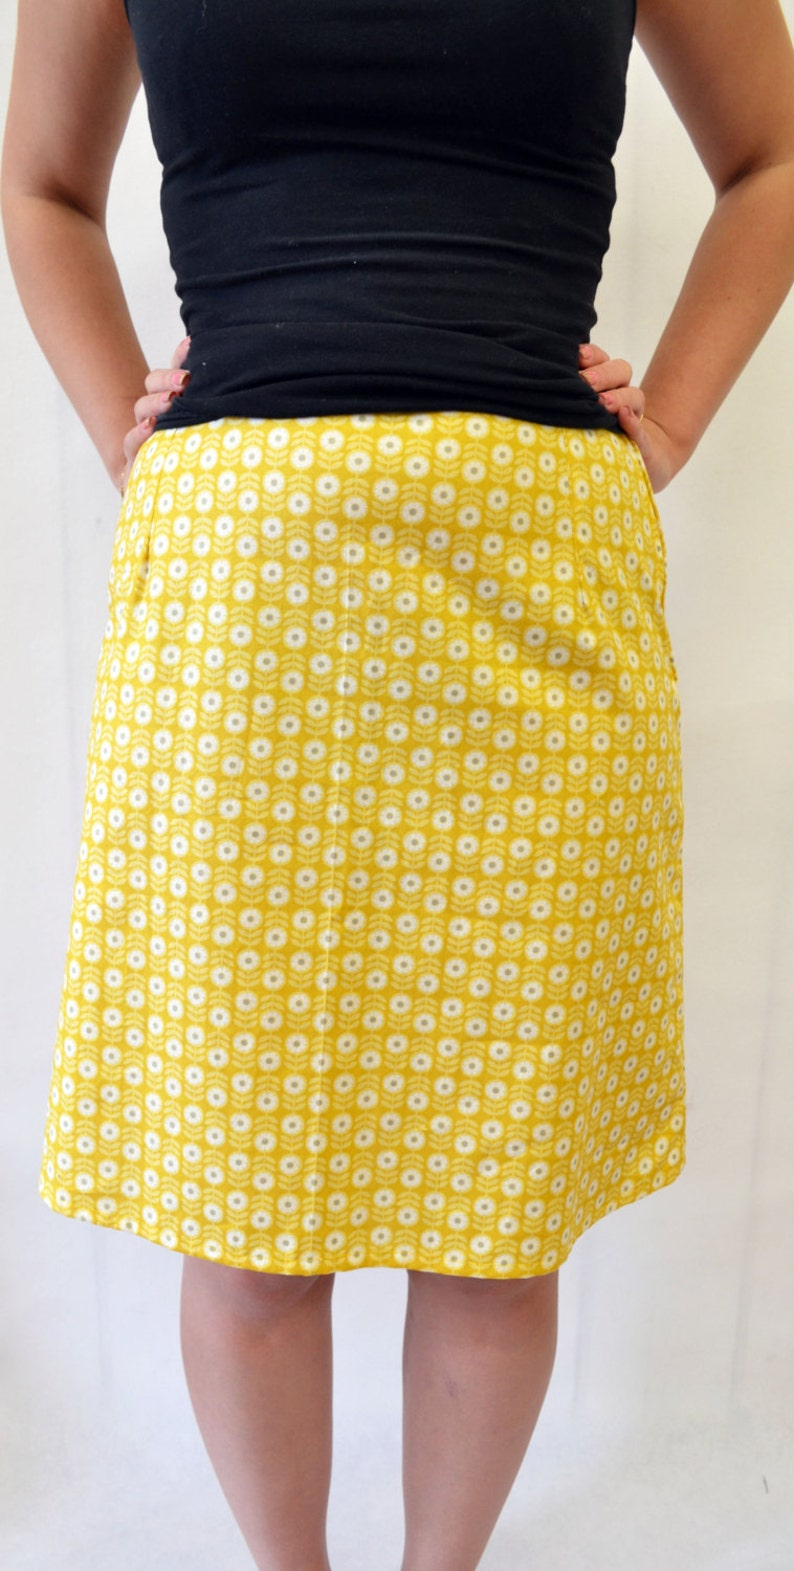 Simple A line skirt SEWING PATTERN